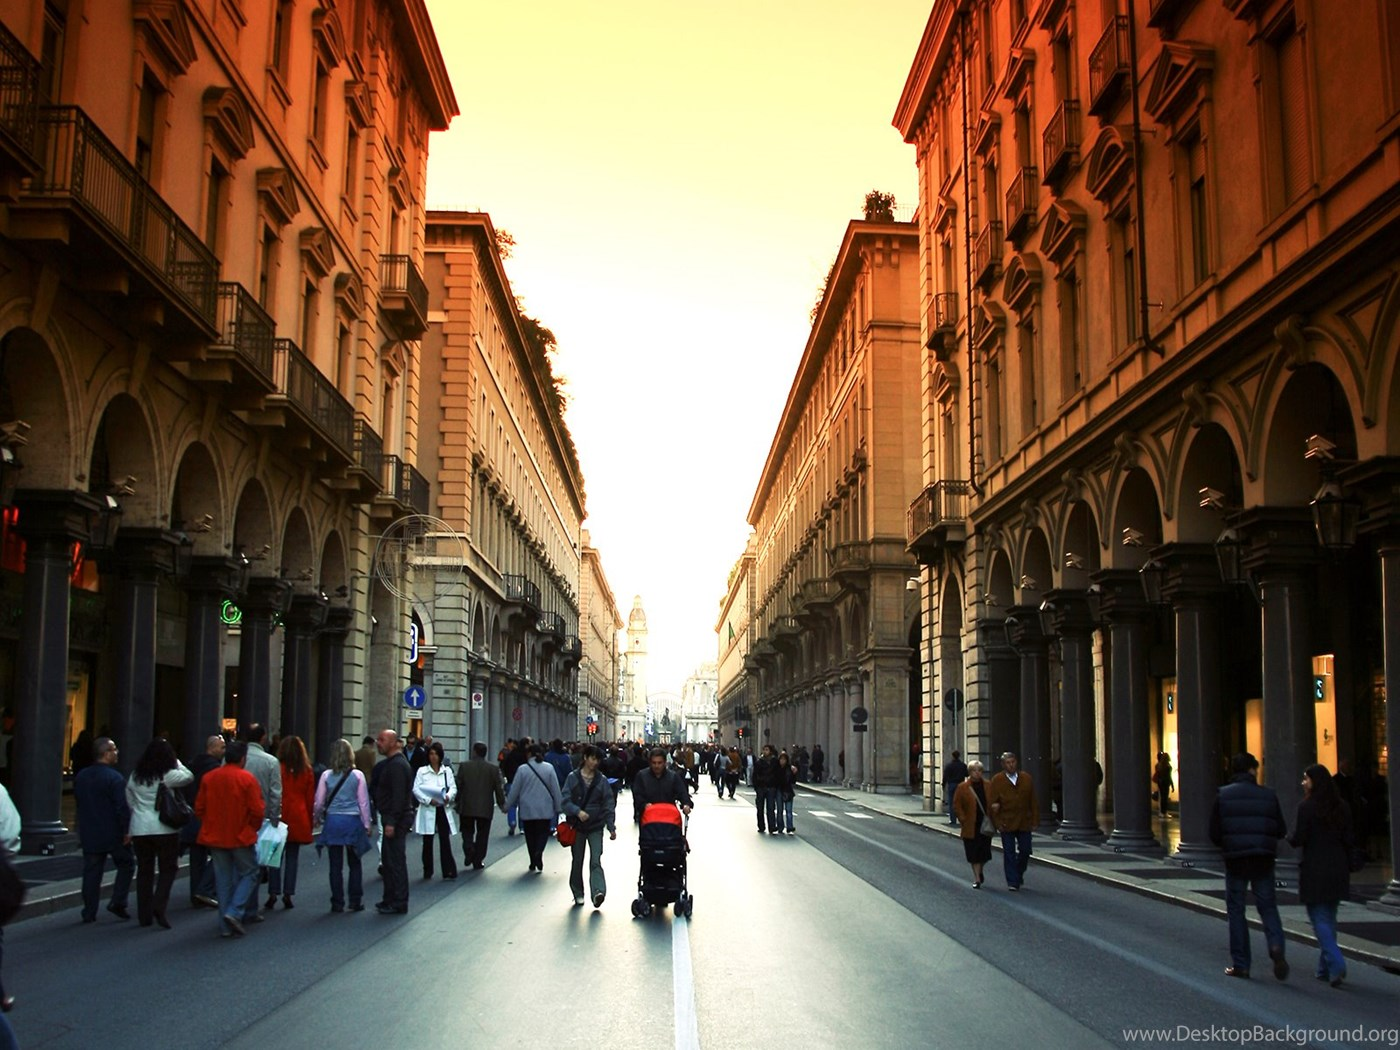 City People Street Walking Hd Wallpapers Places Amazing